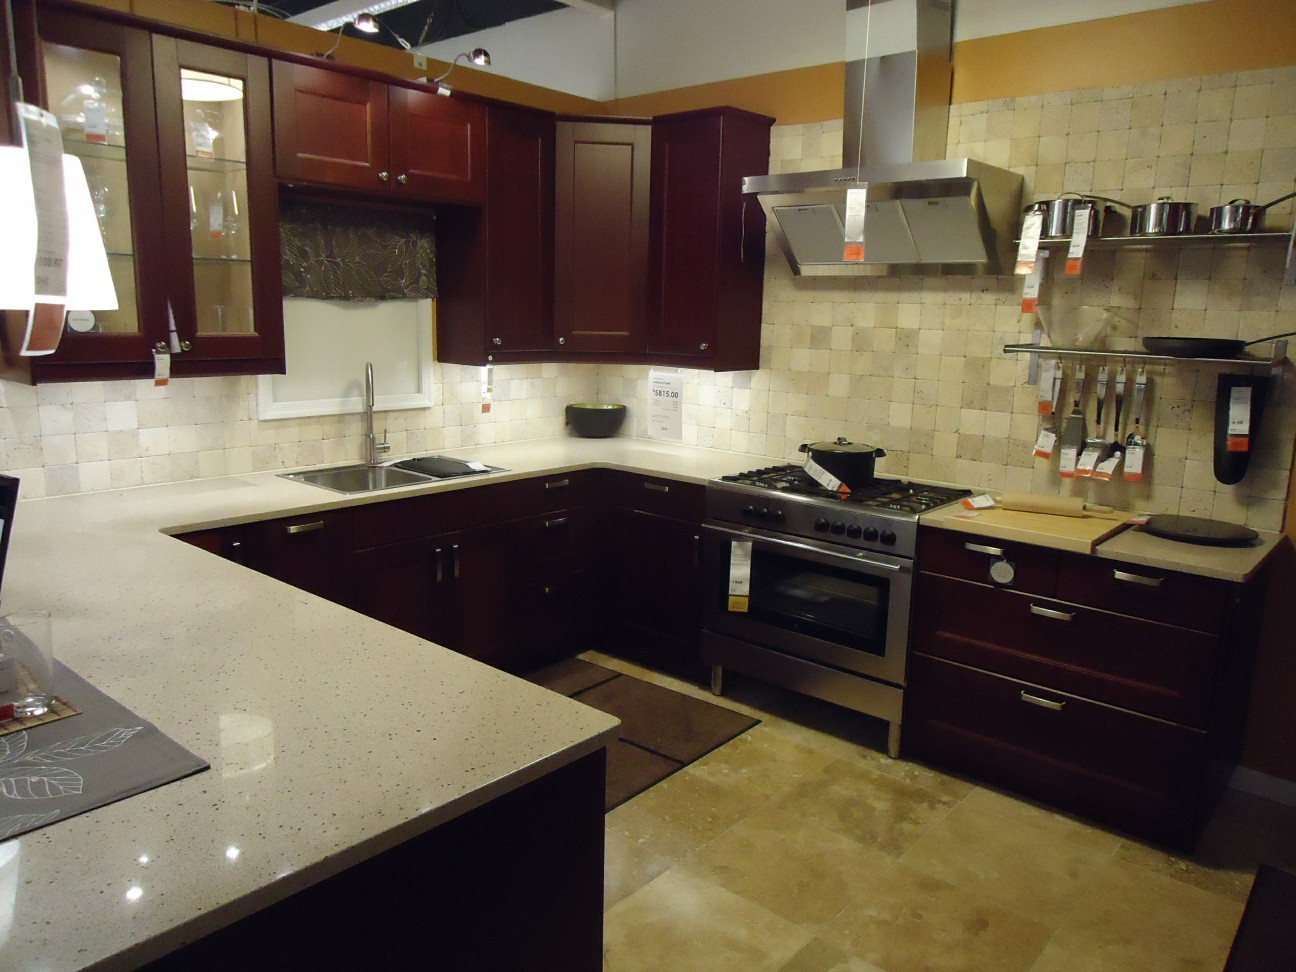 File:Kitchen design at a store in NJ 3.jpg - Wikimedia Commons